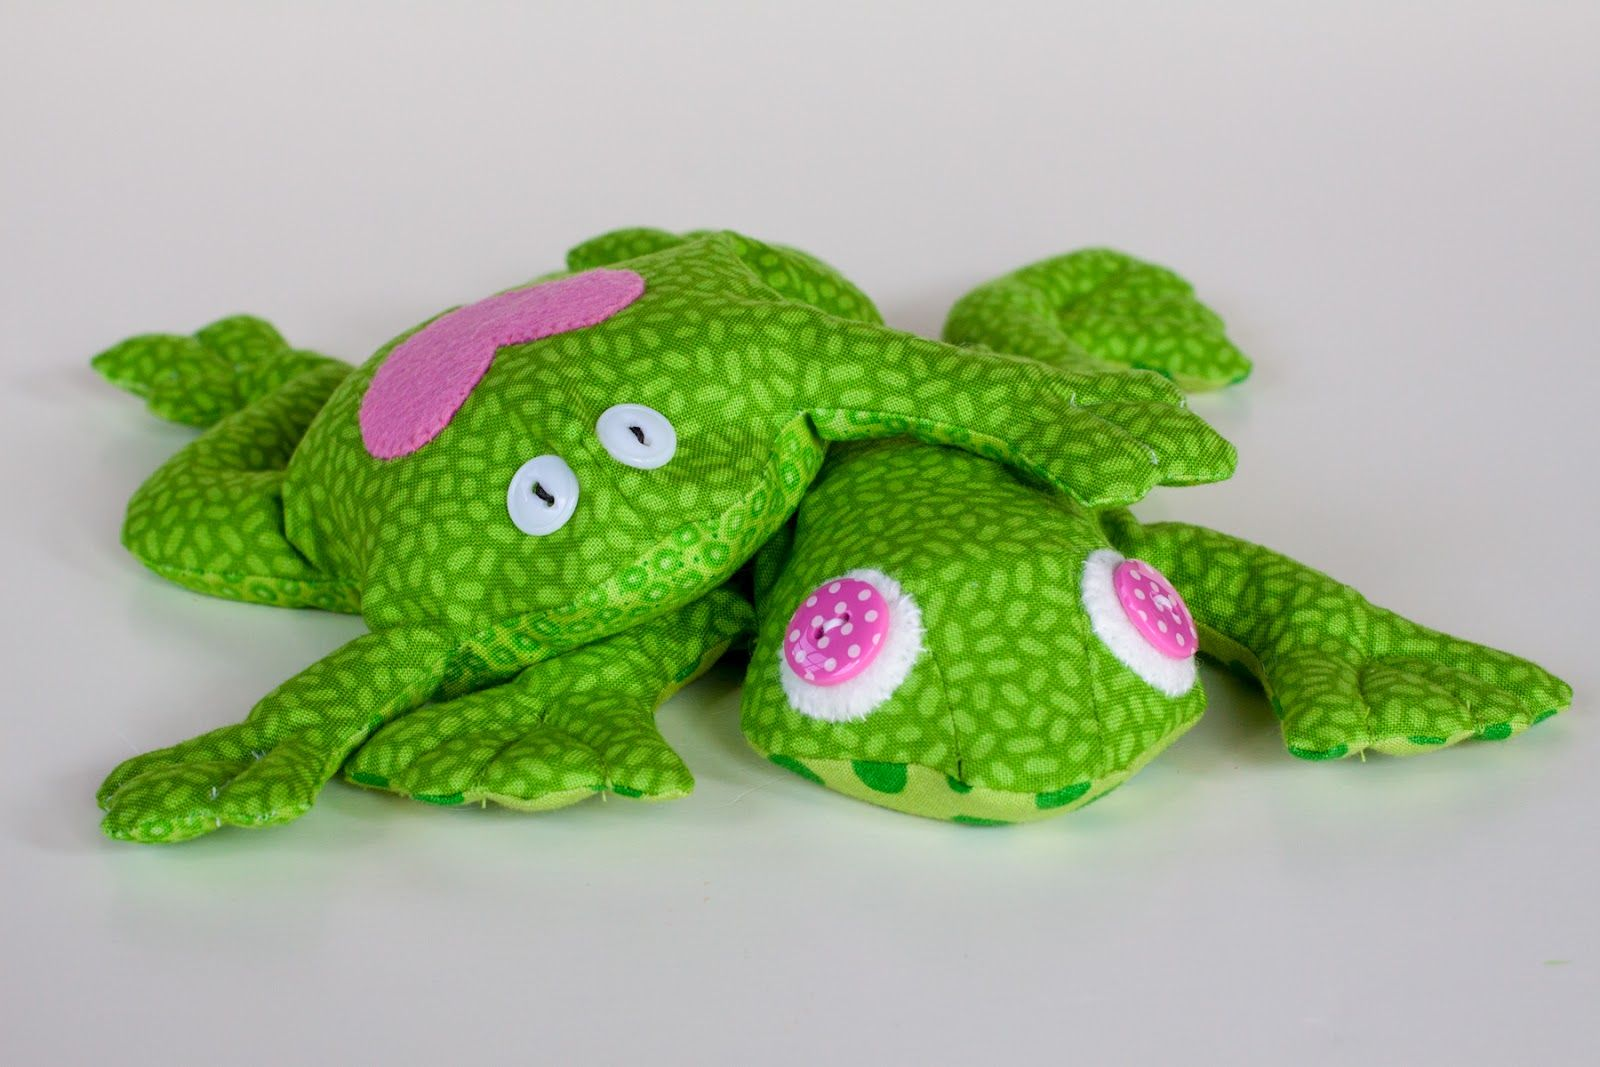 Free Frog Sewing Patterns | July 29 - New frog design + more bean ...